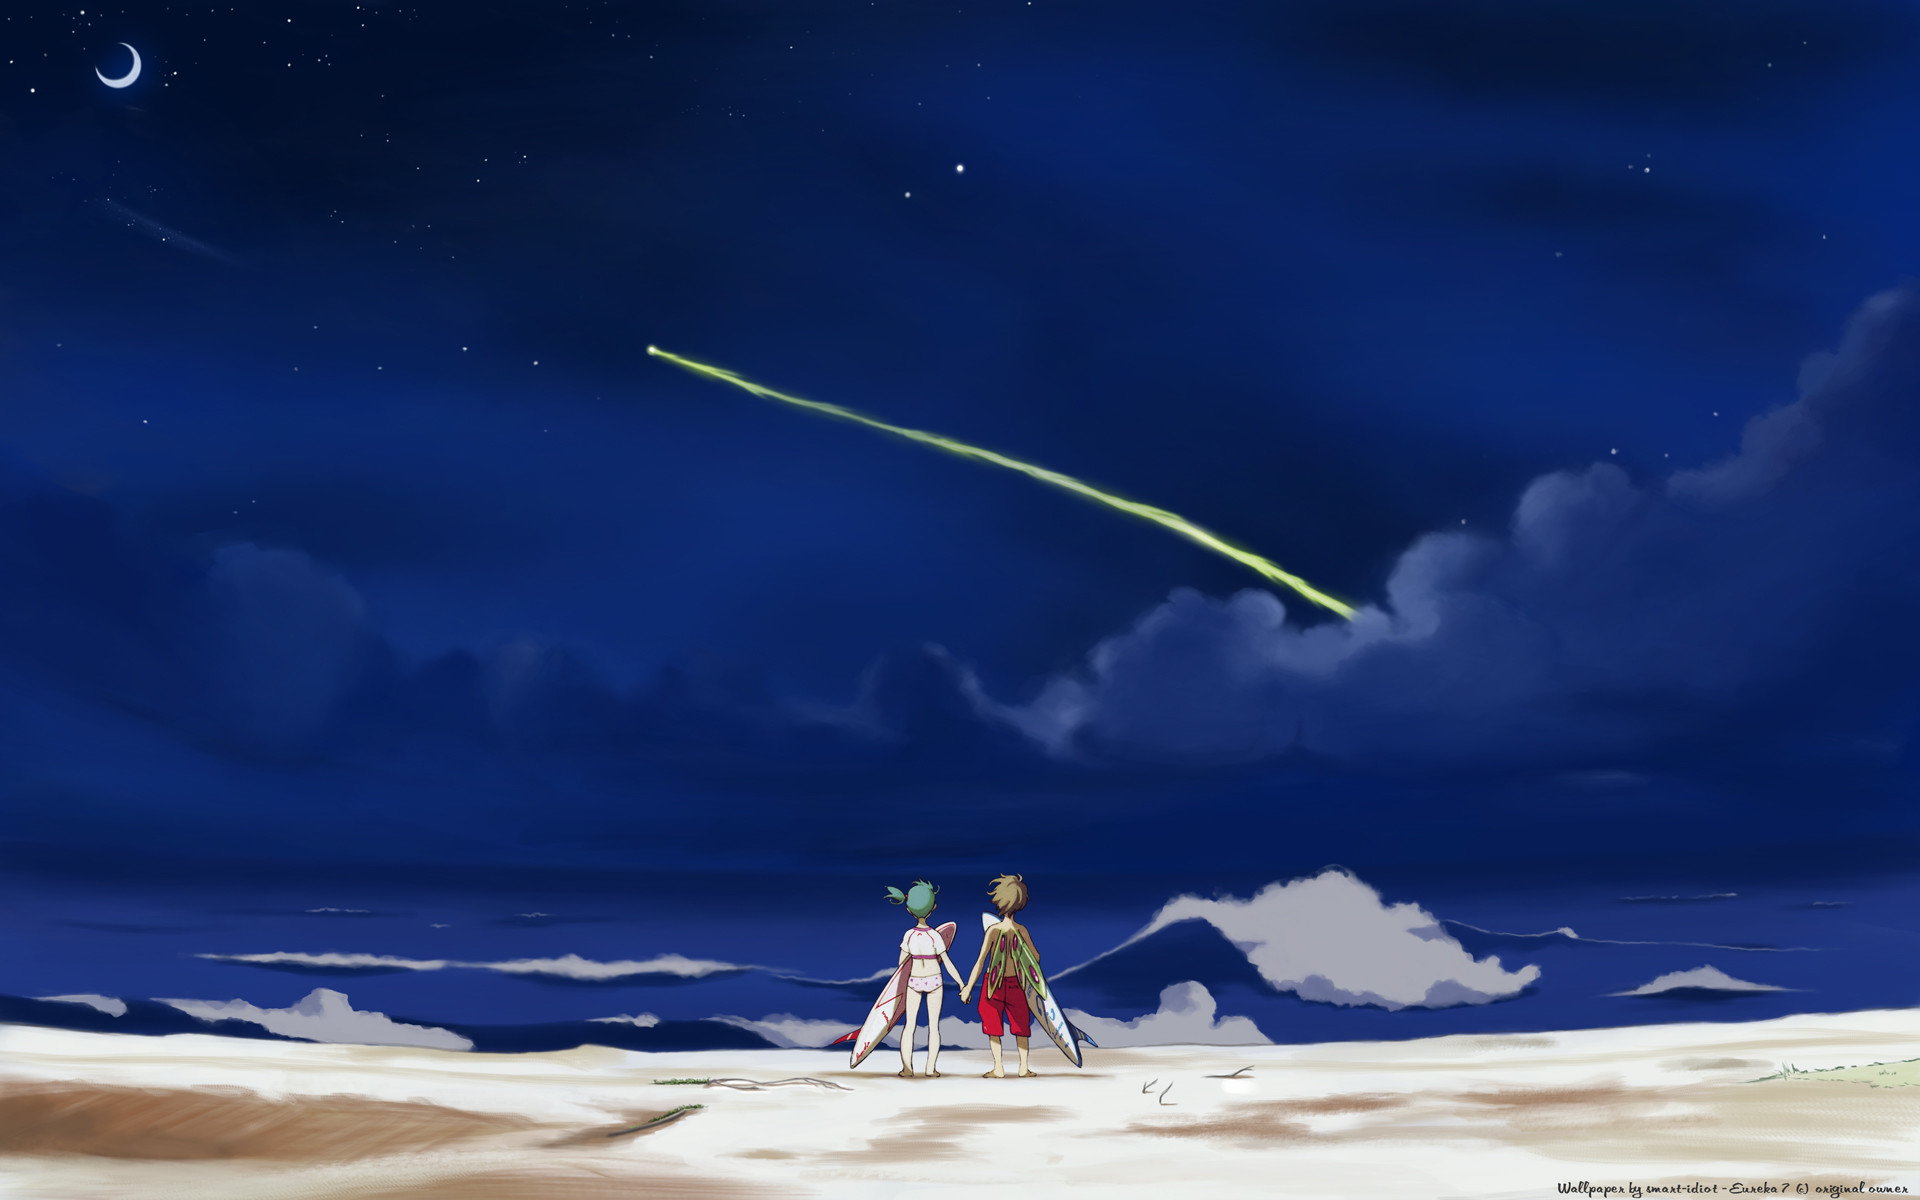 Res: 1920x1200, Eureka Seven HD Wallpaper | Hintergrund |  | ID:73327 - Wallpaper  Abyss